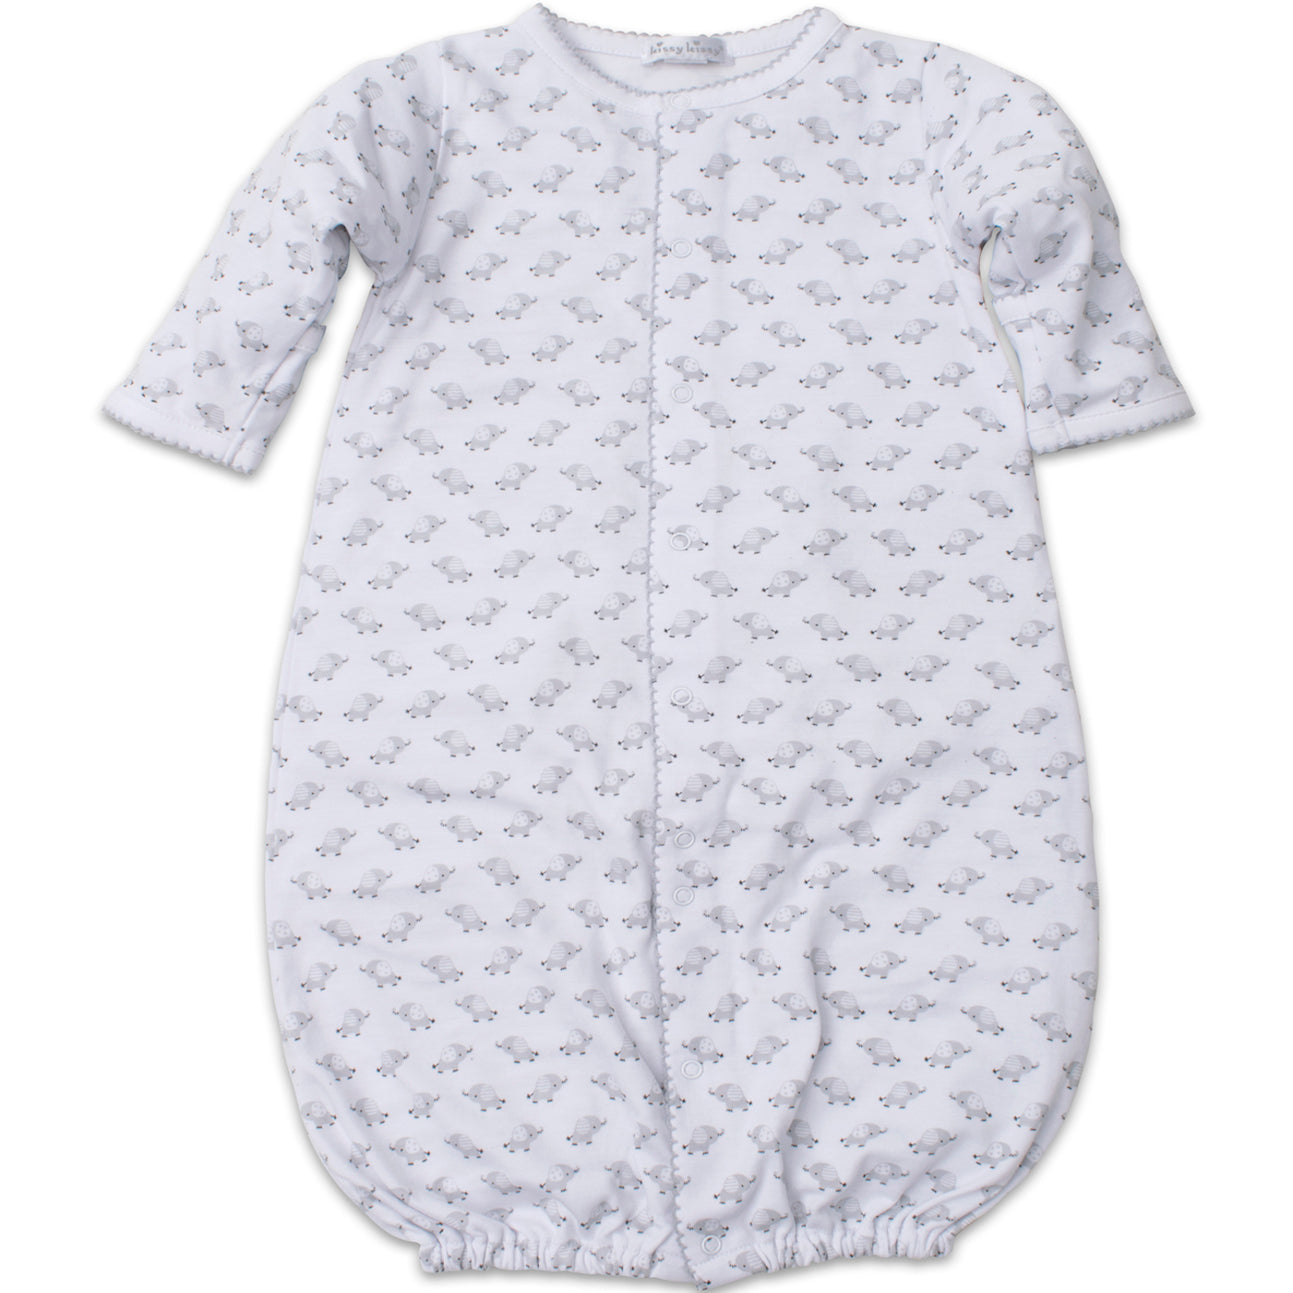 Kissy Kissy 'Baby Trunks' Converter Gown